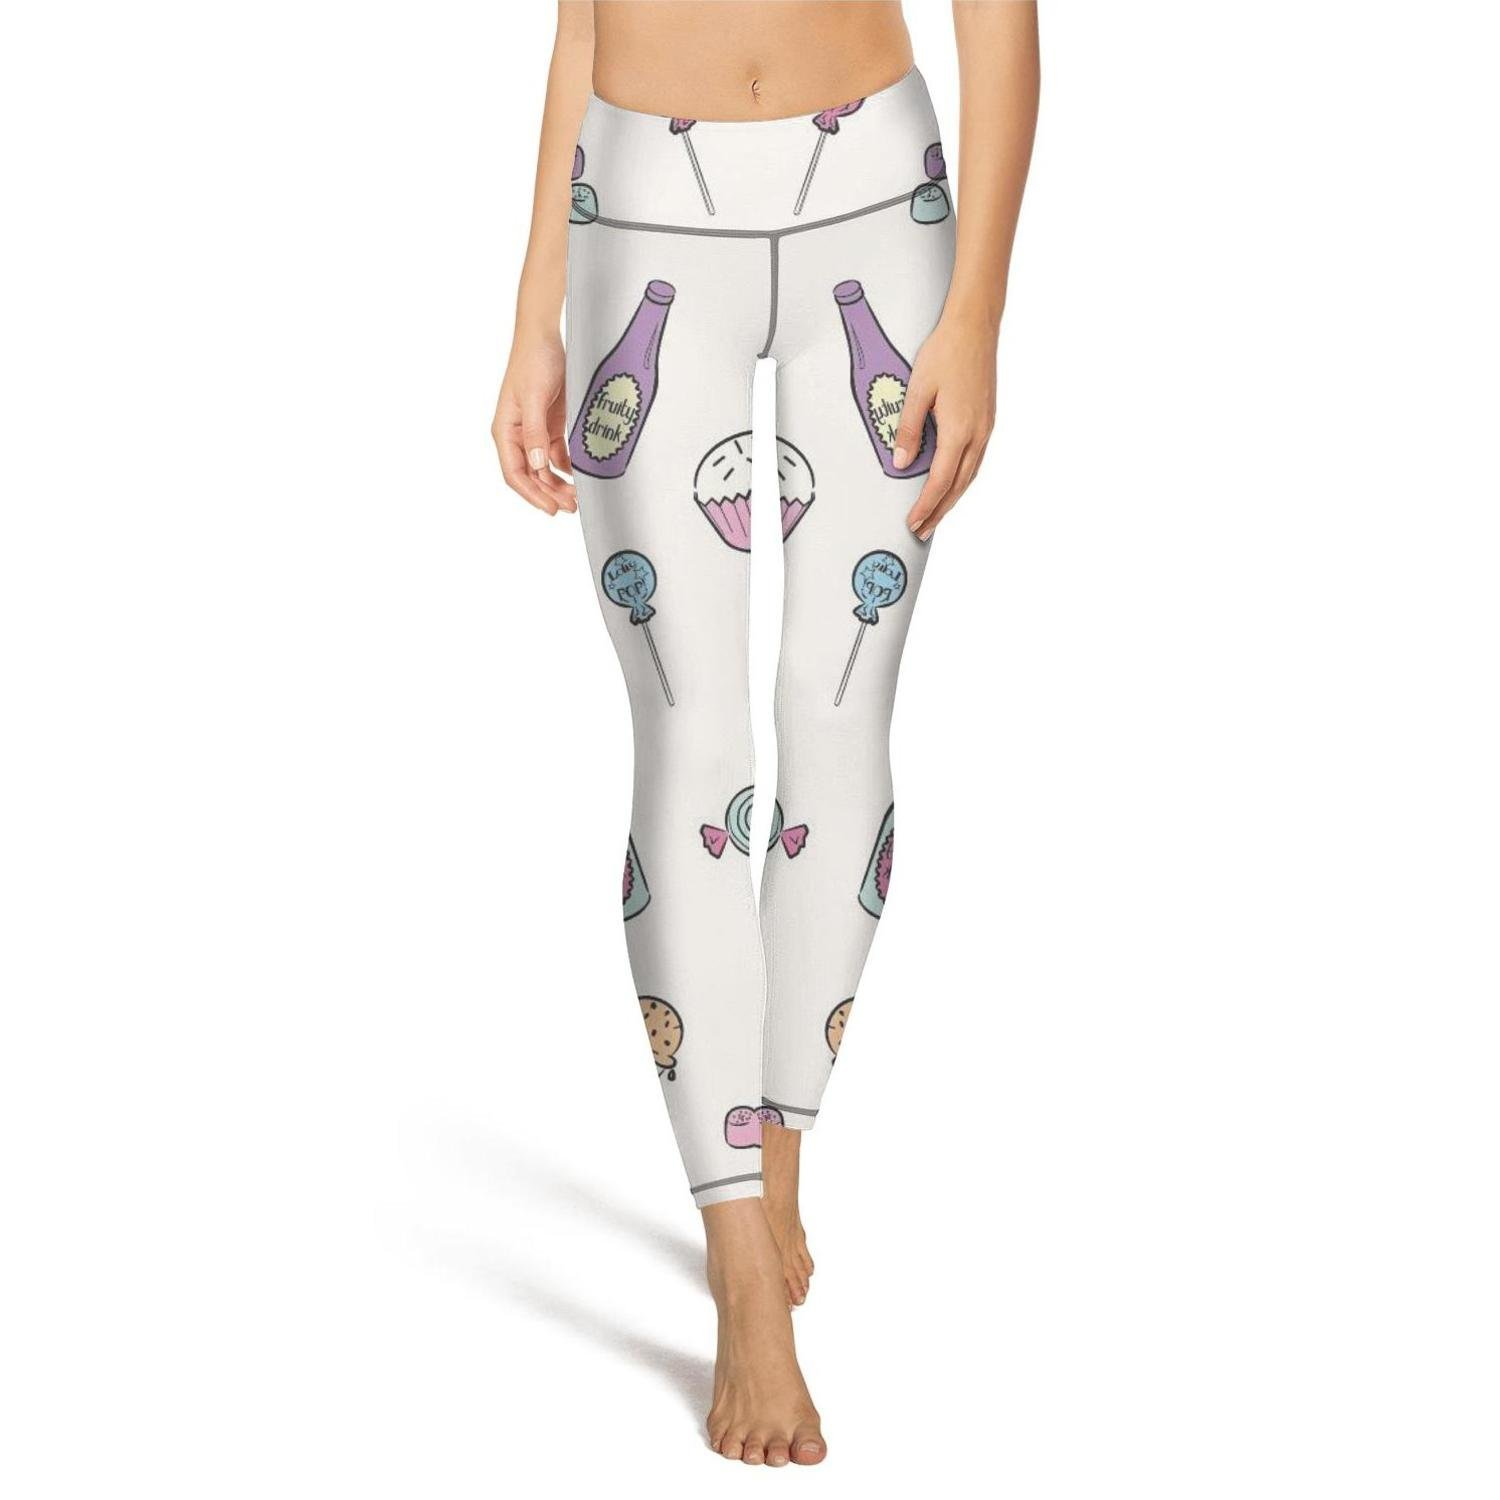 Drink Candy Icecream Small Shadfyvgf Summer Womens high Waisted Yoga Pants Deers Moose Christmas Tree Pattern Leggings Outfit